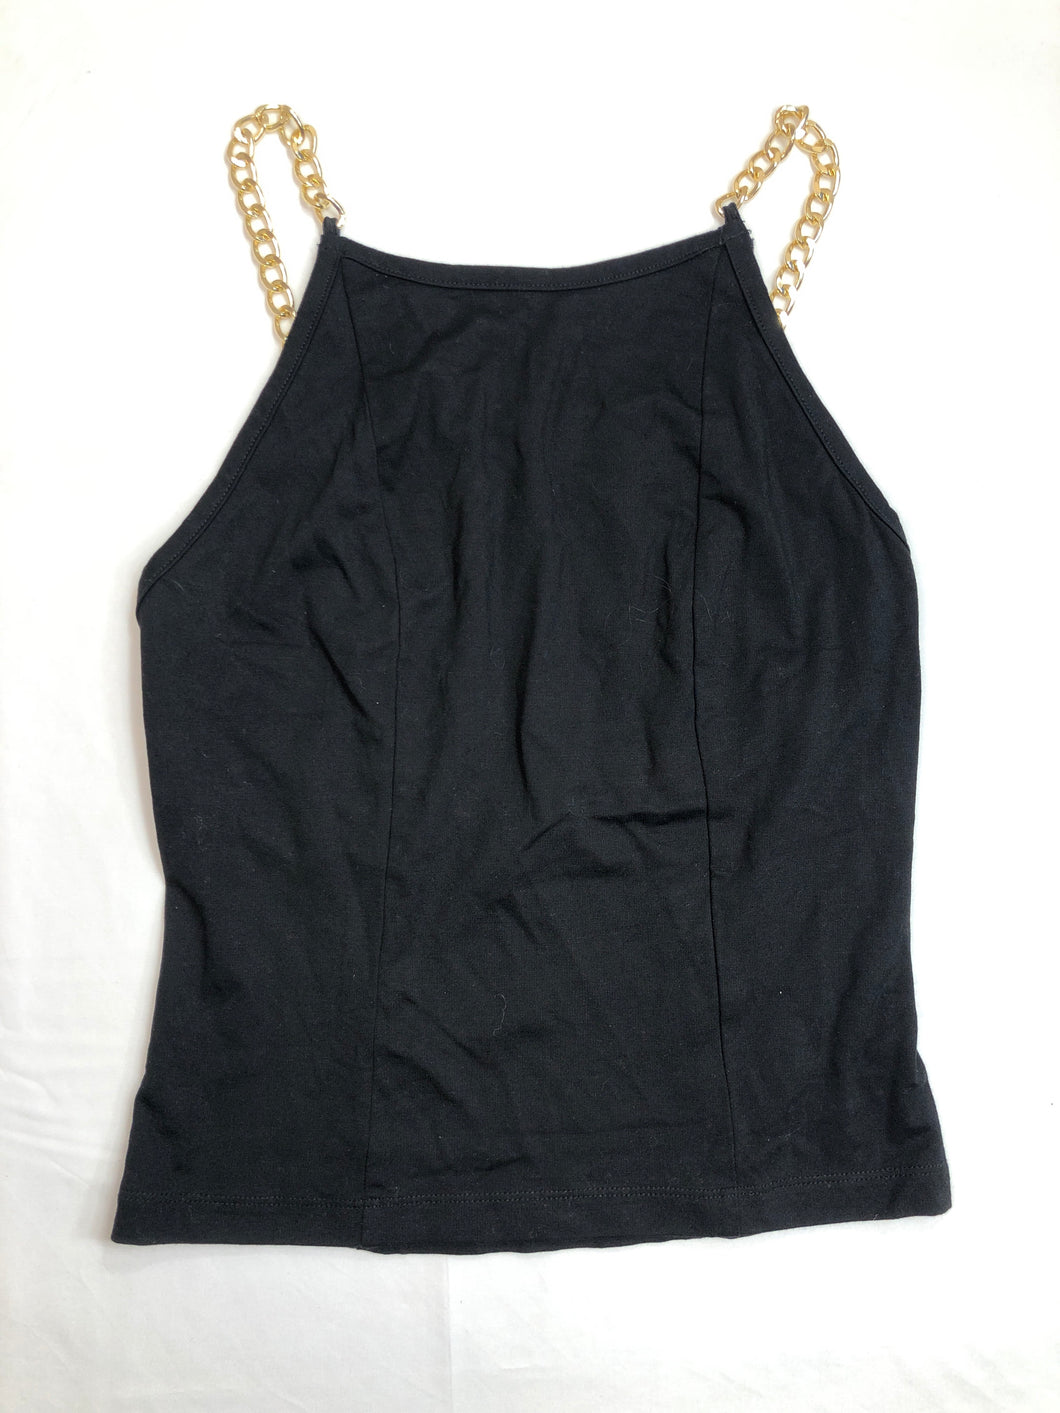 Gently Used Women's Urban Outfitters Top Size S